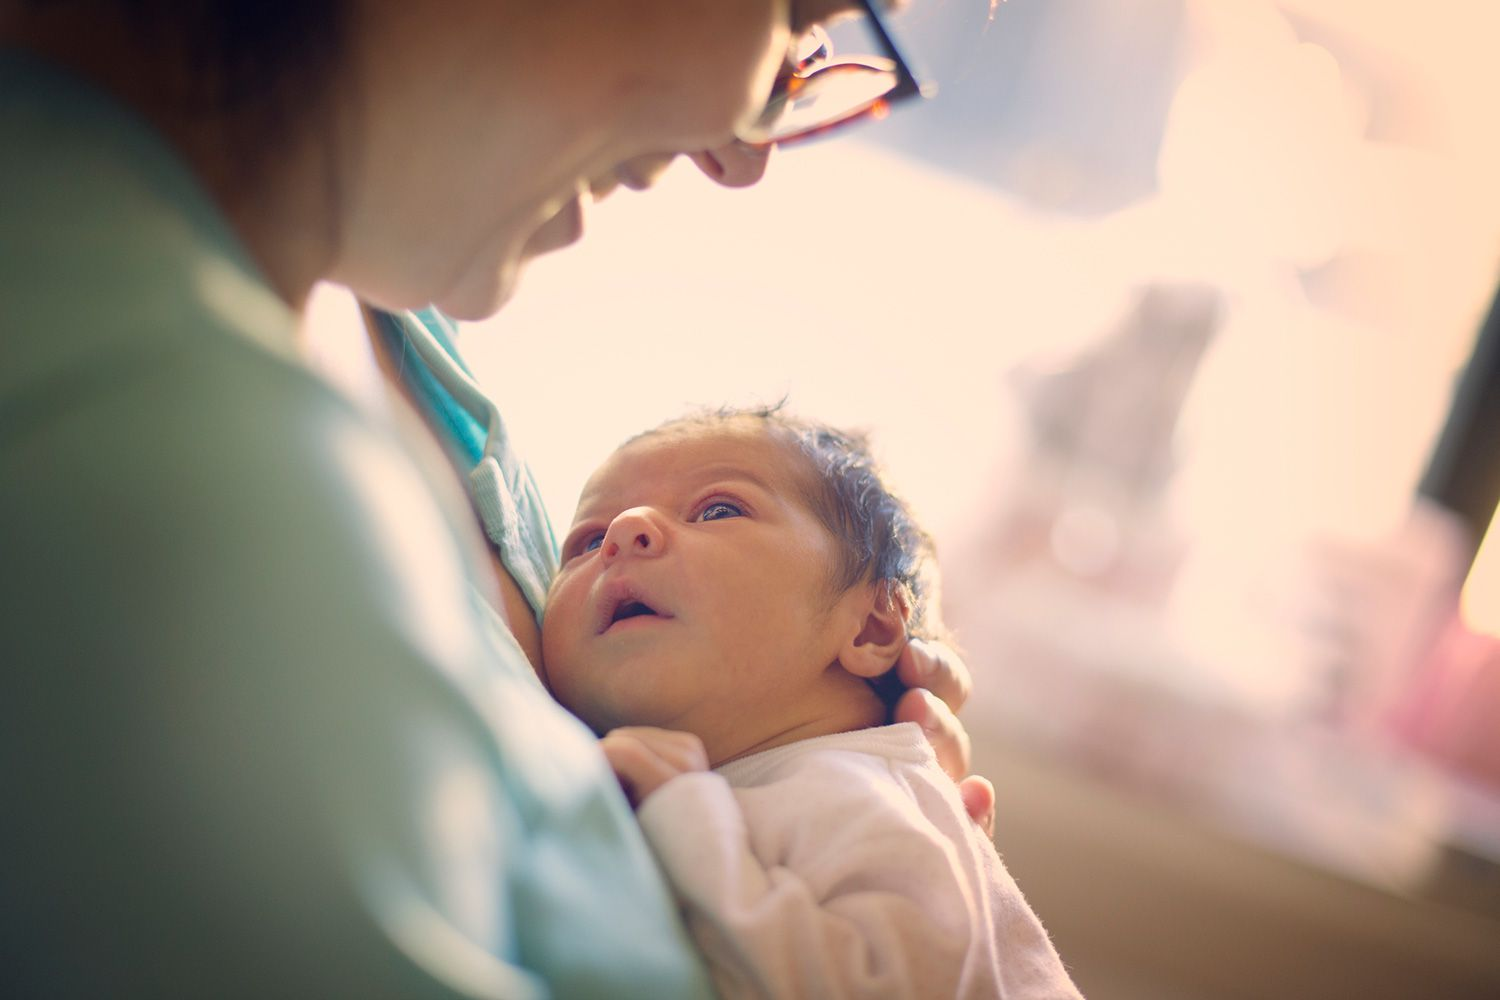 Newborn baby being held by smiling woman.